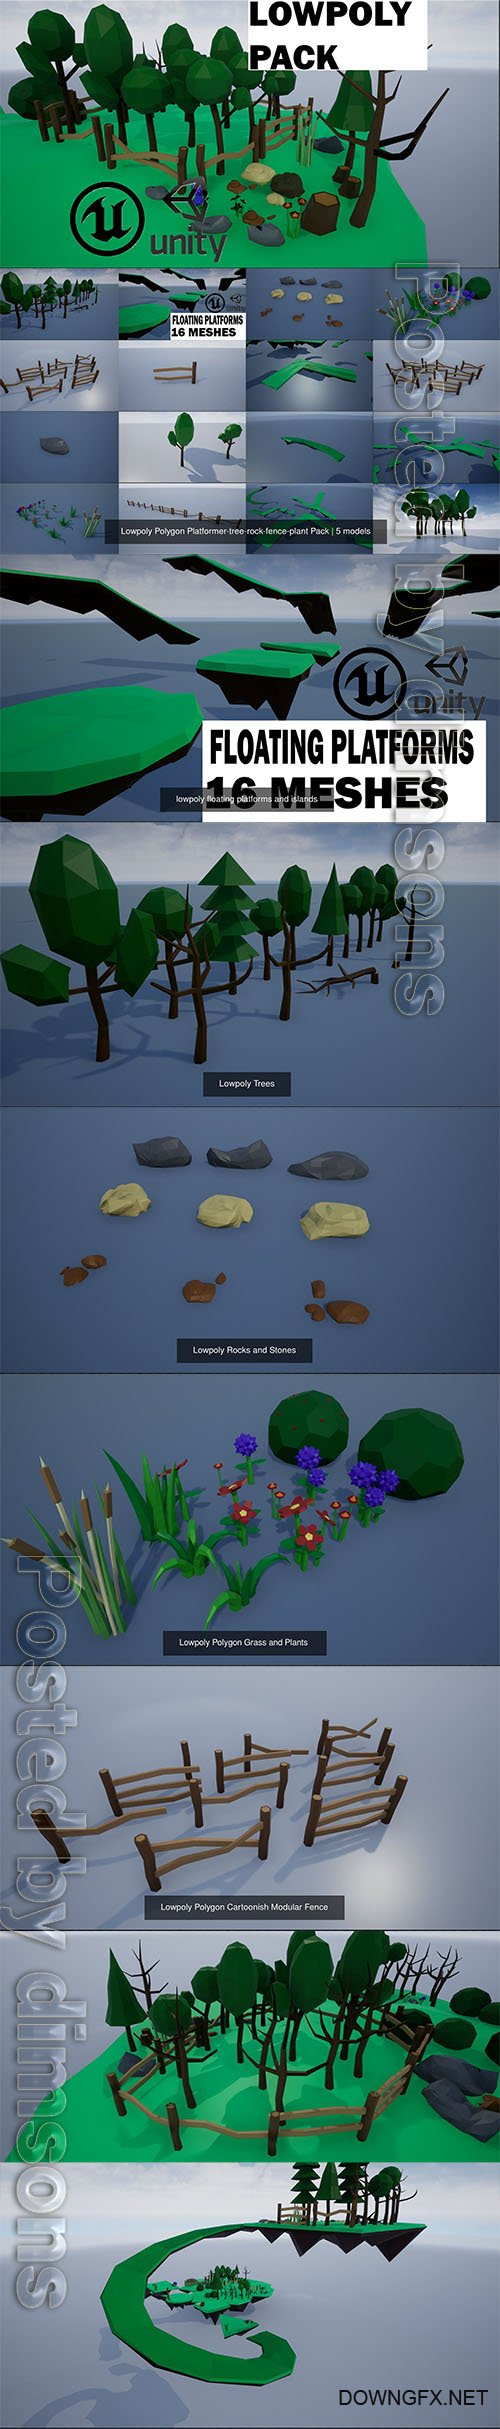 Lowpoly Polygon Platformer-tree-rock-fence-plant Pack 3D Model Collection